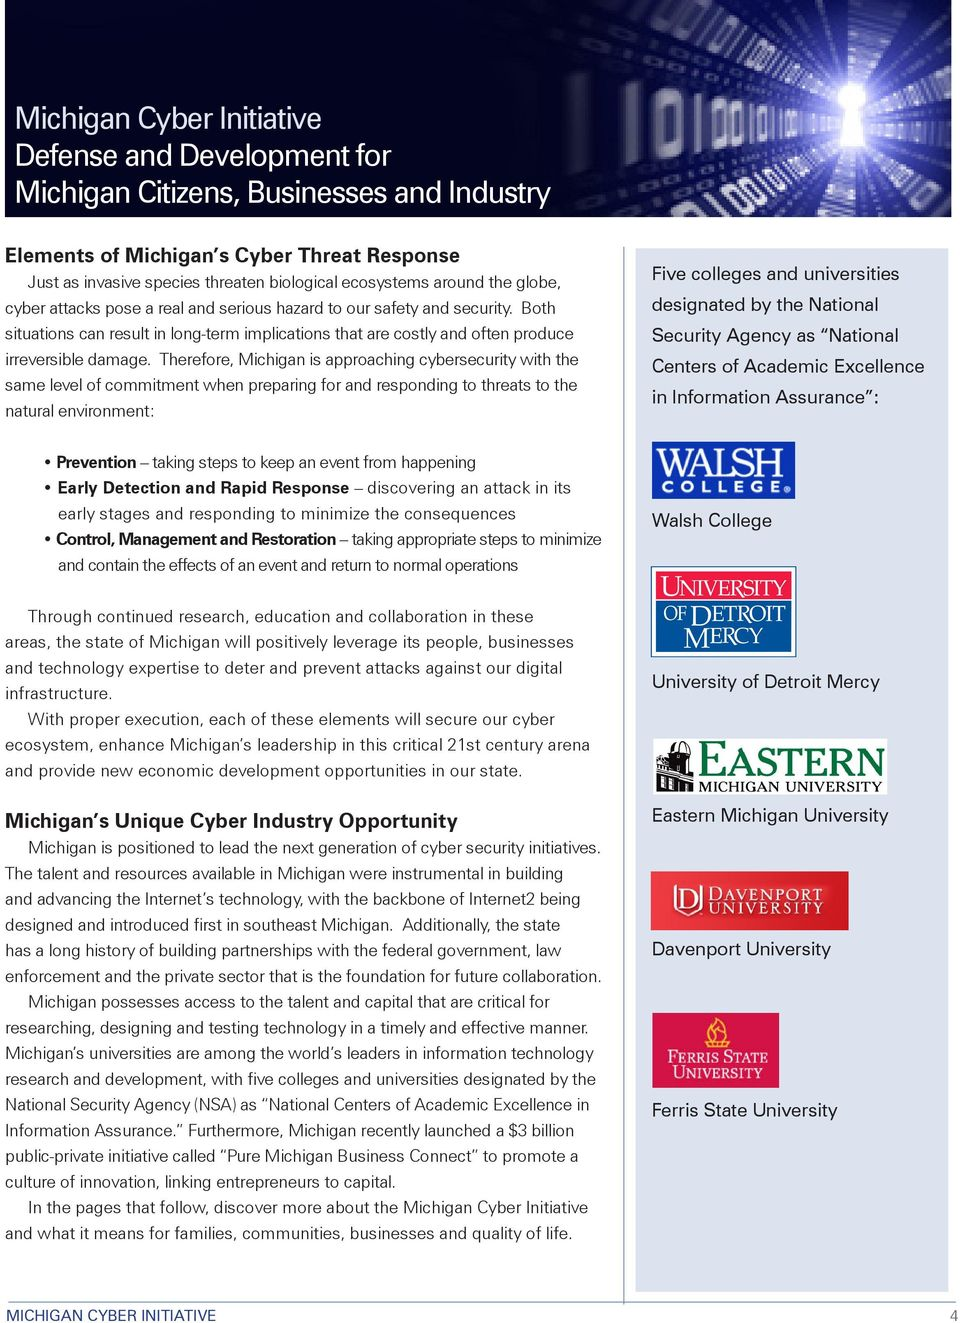 Therefore, Michigan is approaching cybersecurity with the same level of commitment when preparing for and responding to threats to the natural environment: Five colleges and universities designated